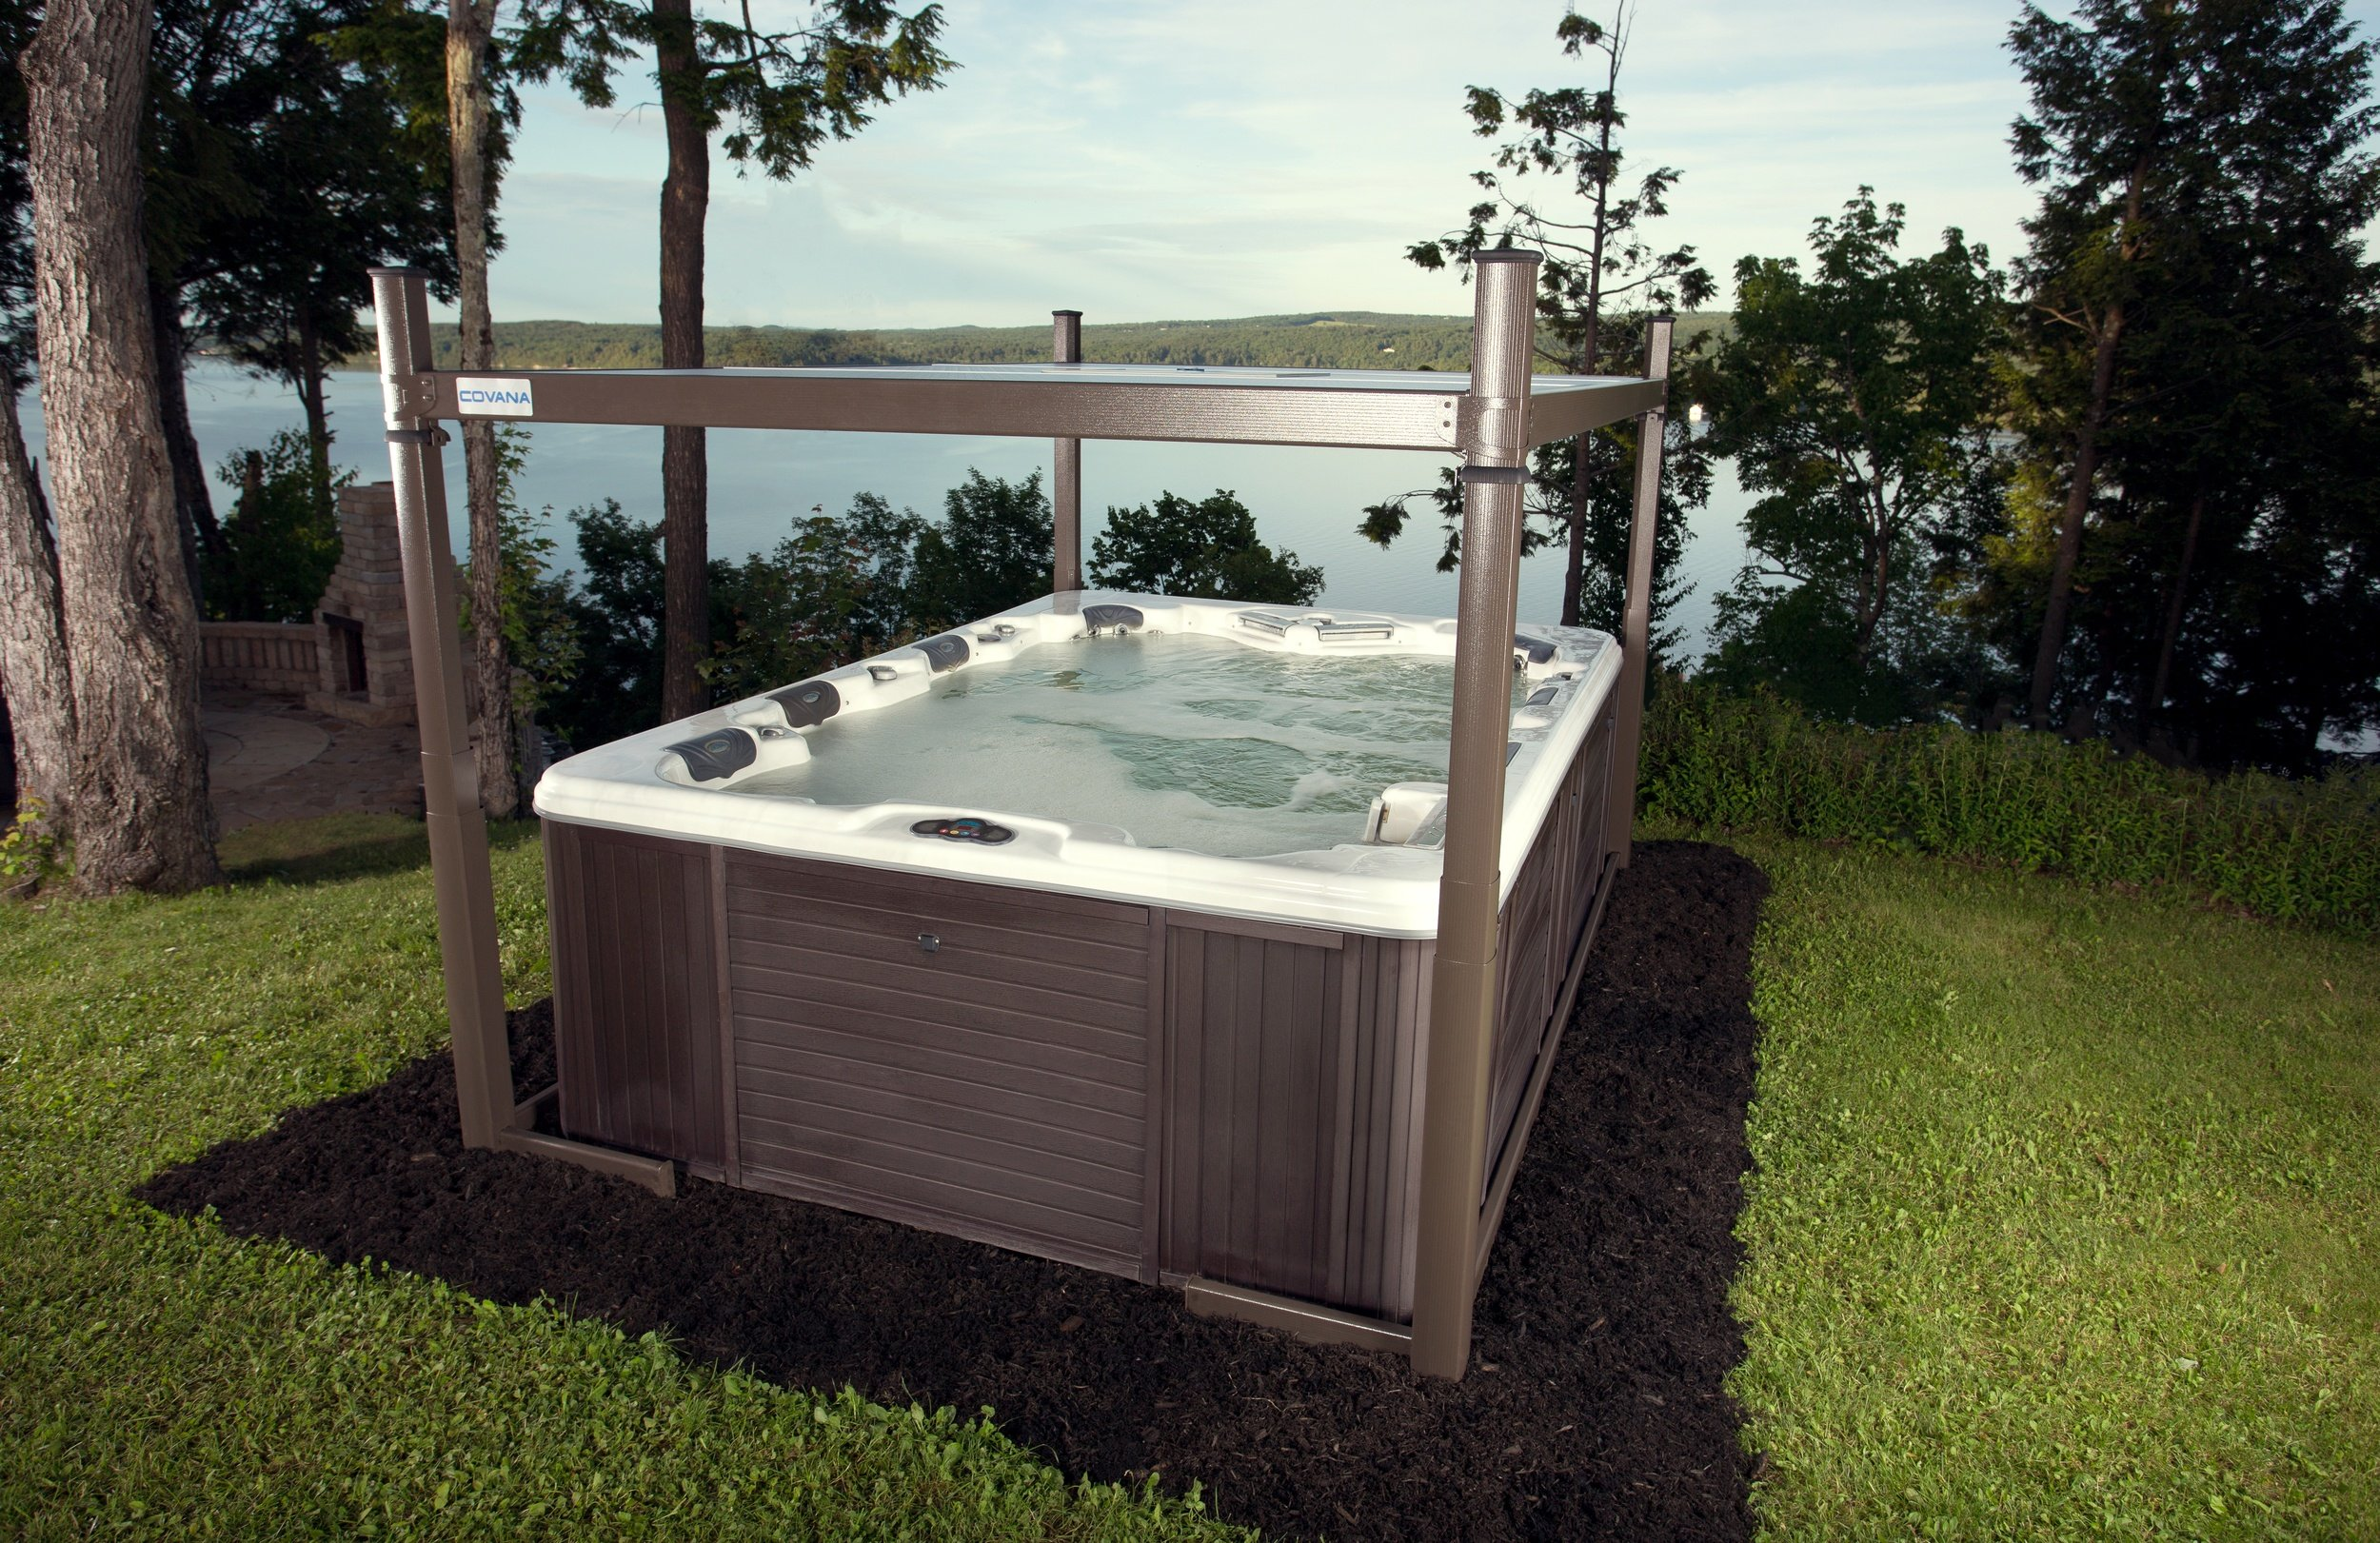 5 BENEFITS OF INSTALLING A COVANA AUTOMATED SPA TOP IN ARIZONA